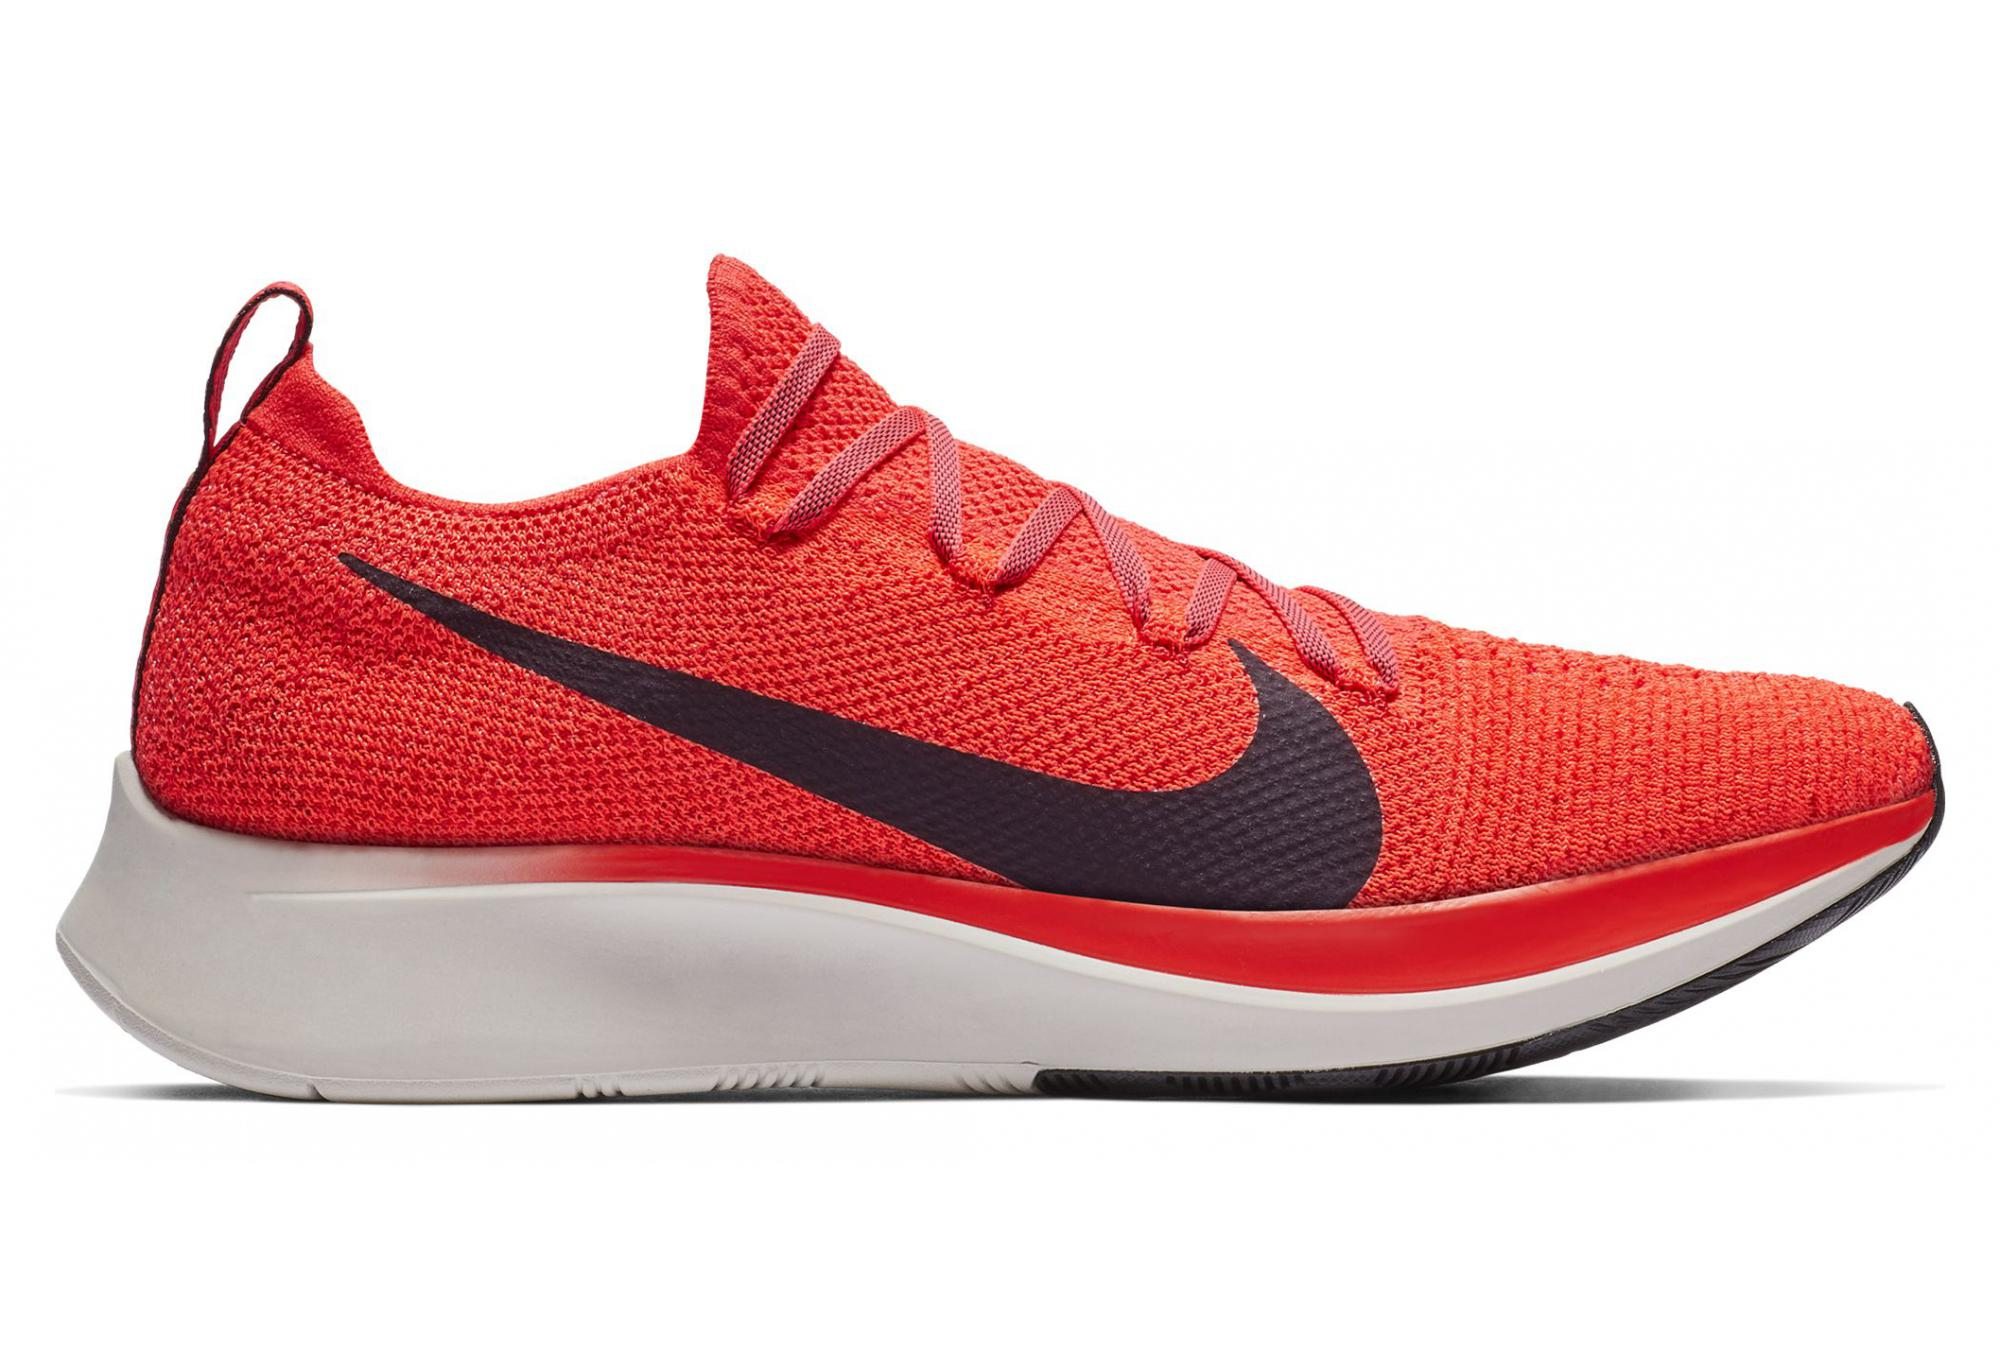 5e539b0bca1df Nike Zoom Fly Flyknit Red Black Men